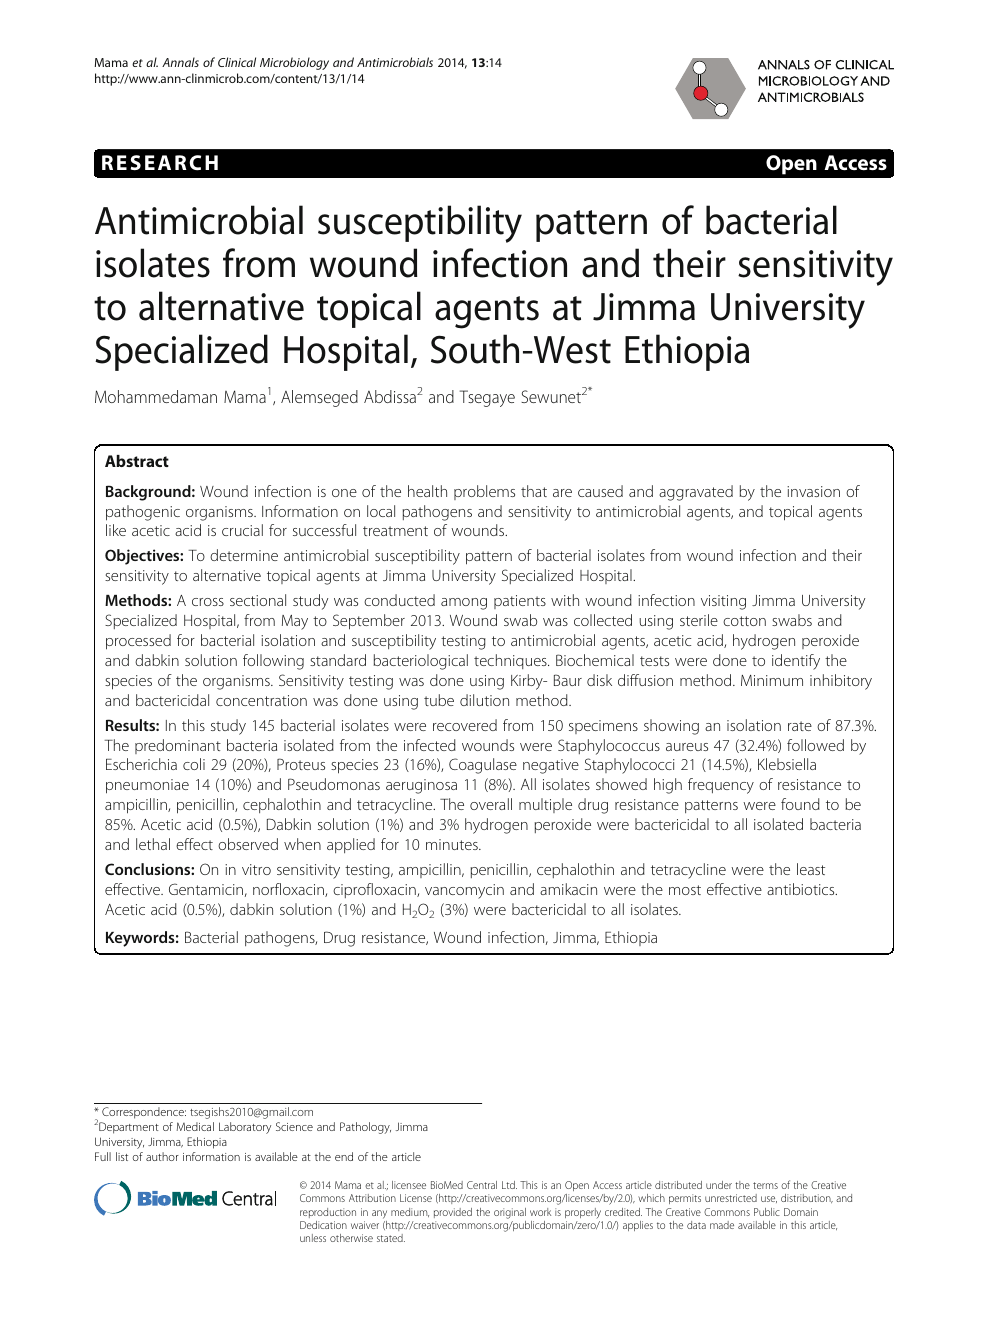 Antimicrobial susceptibility pattern of bacterial isolates